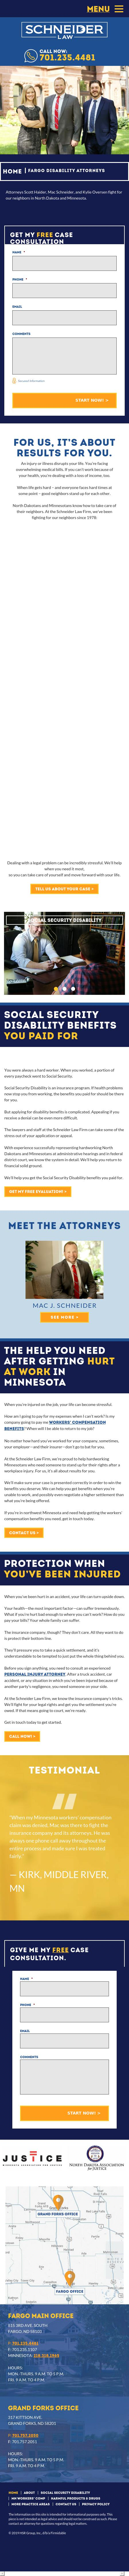 Schneider Mac - Fargo ND Lawyers